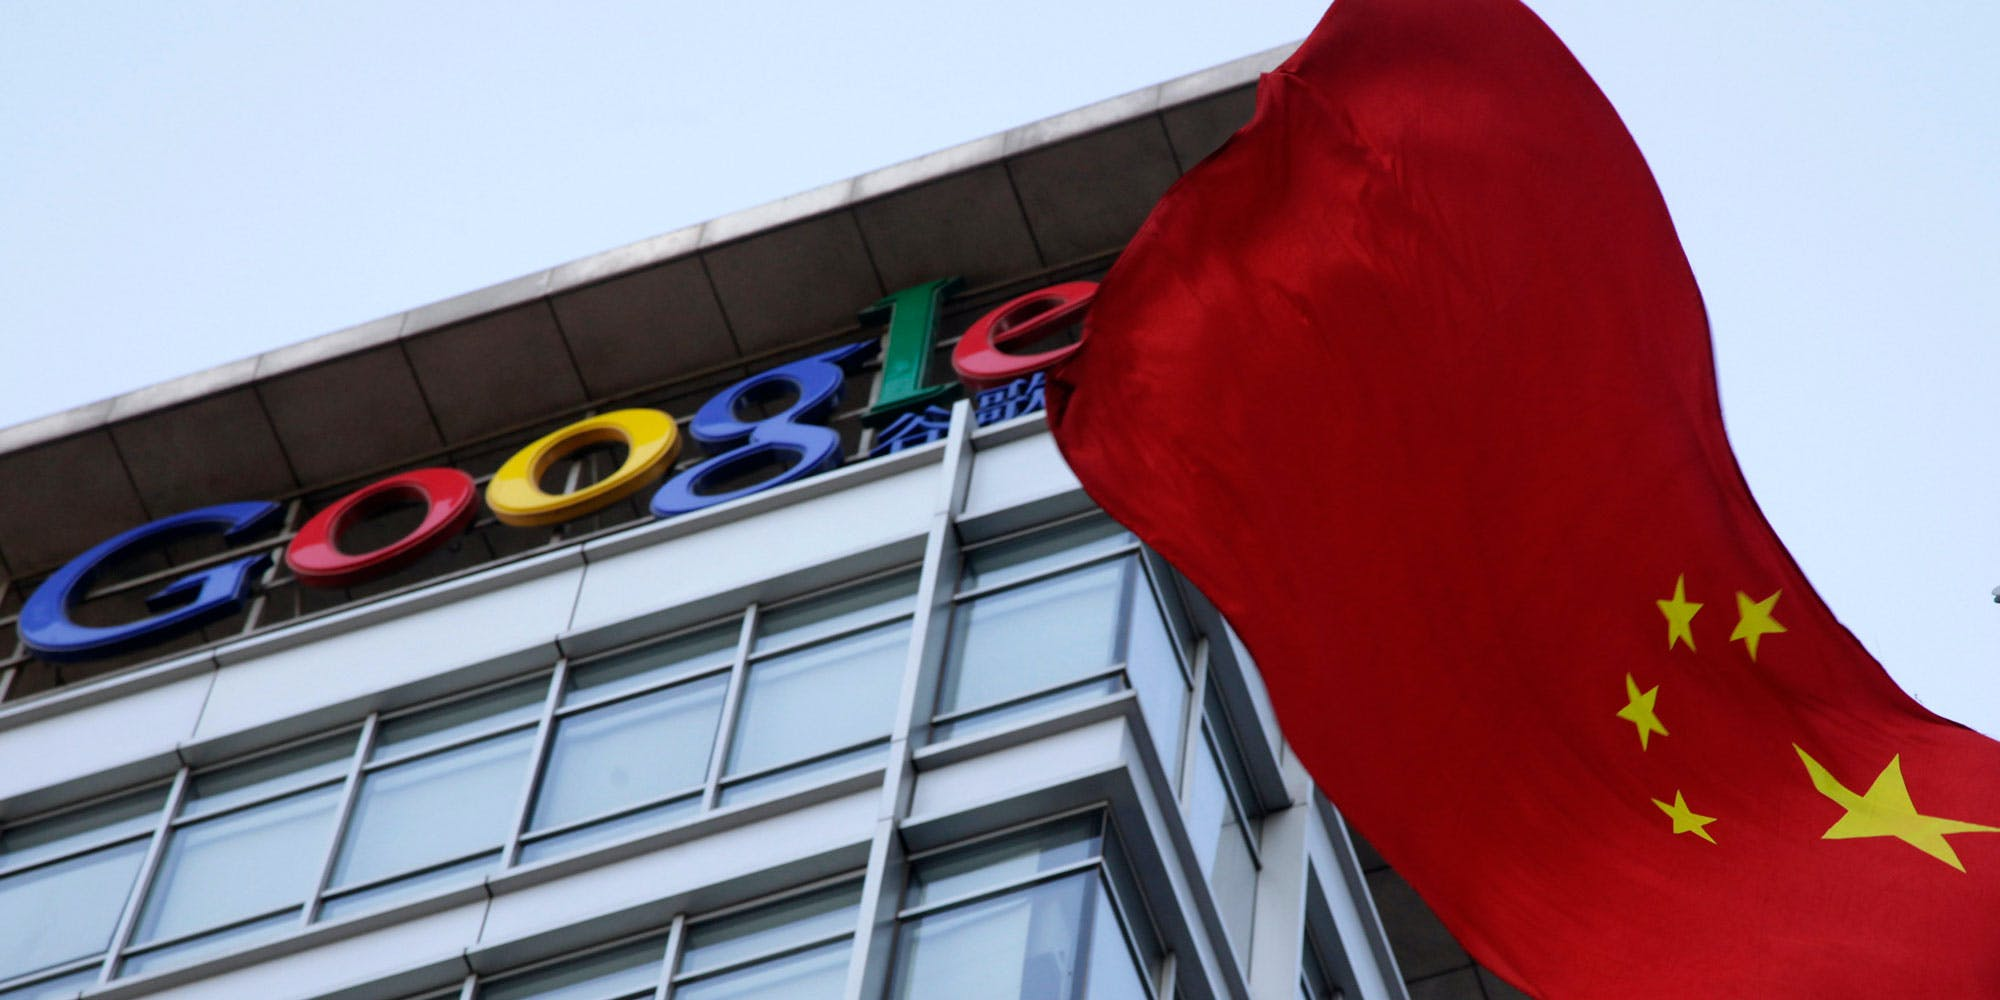 A Chinese flag flutters near the Google logo on top of Google's China headquarters in Beijing, China, Friday, Jan. 22, 2010. U.S. Secretary of State Hillary Rodham Clinton on Thursday urged China to investigate cyber intrusions that led search angle Google to threaten to pull out of that country, and challenged Beijing to openly publish its findings. (AP Photo/Ng Han Guan)